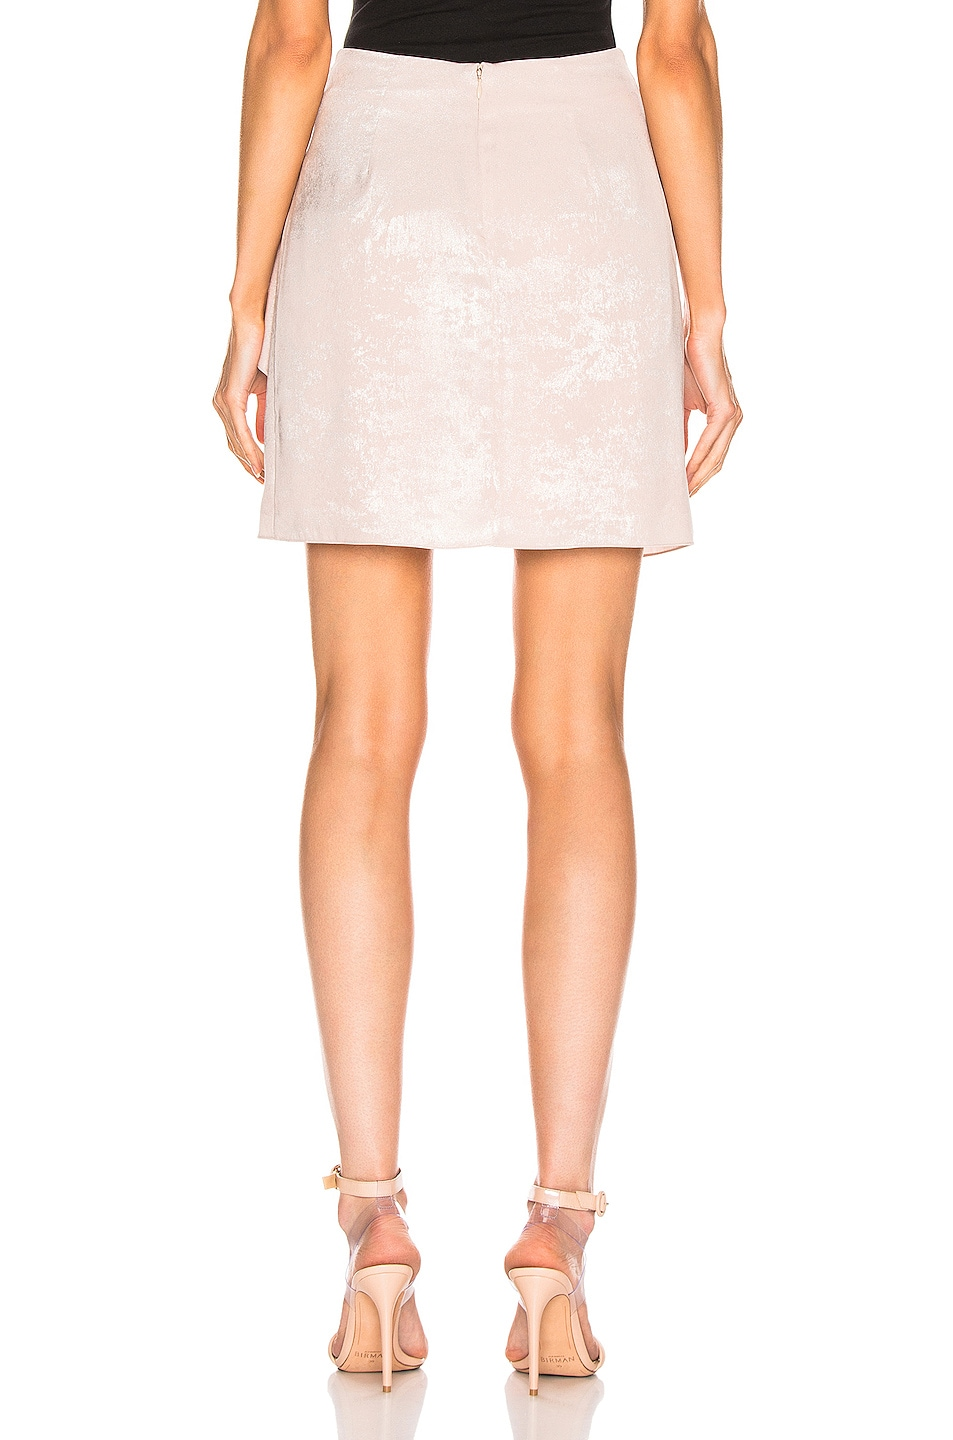 Image 4 of Caroline Constas Koren Skirt in Blush